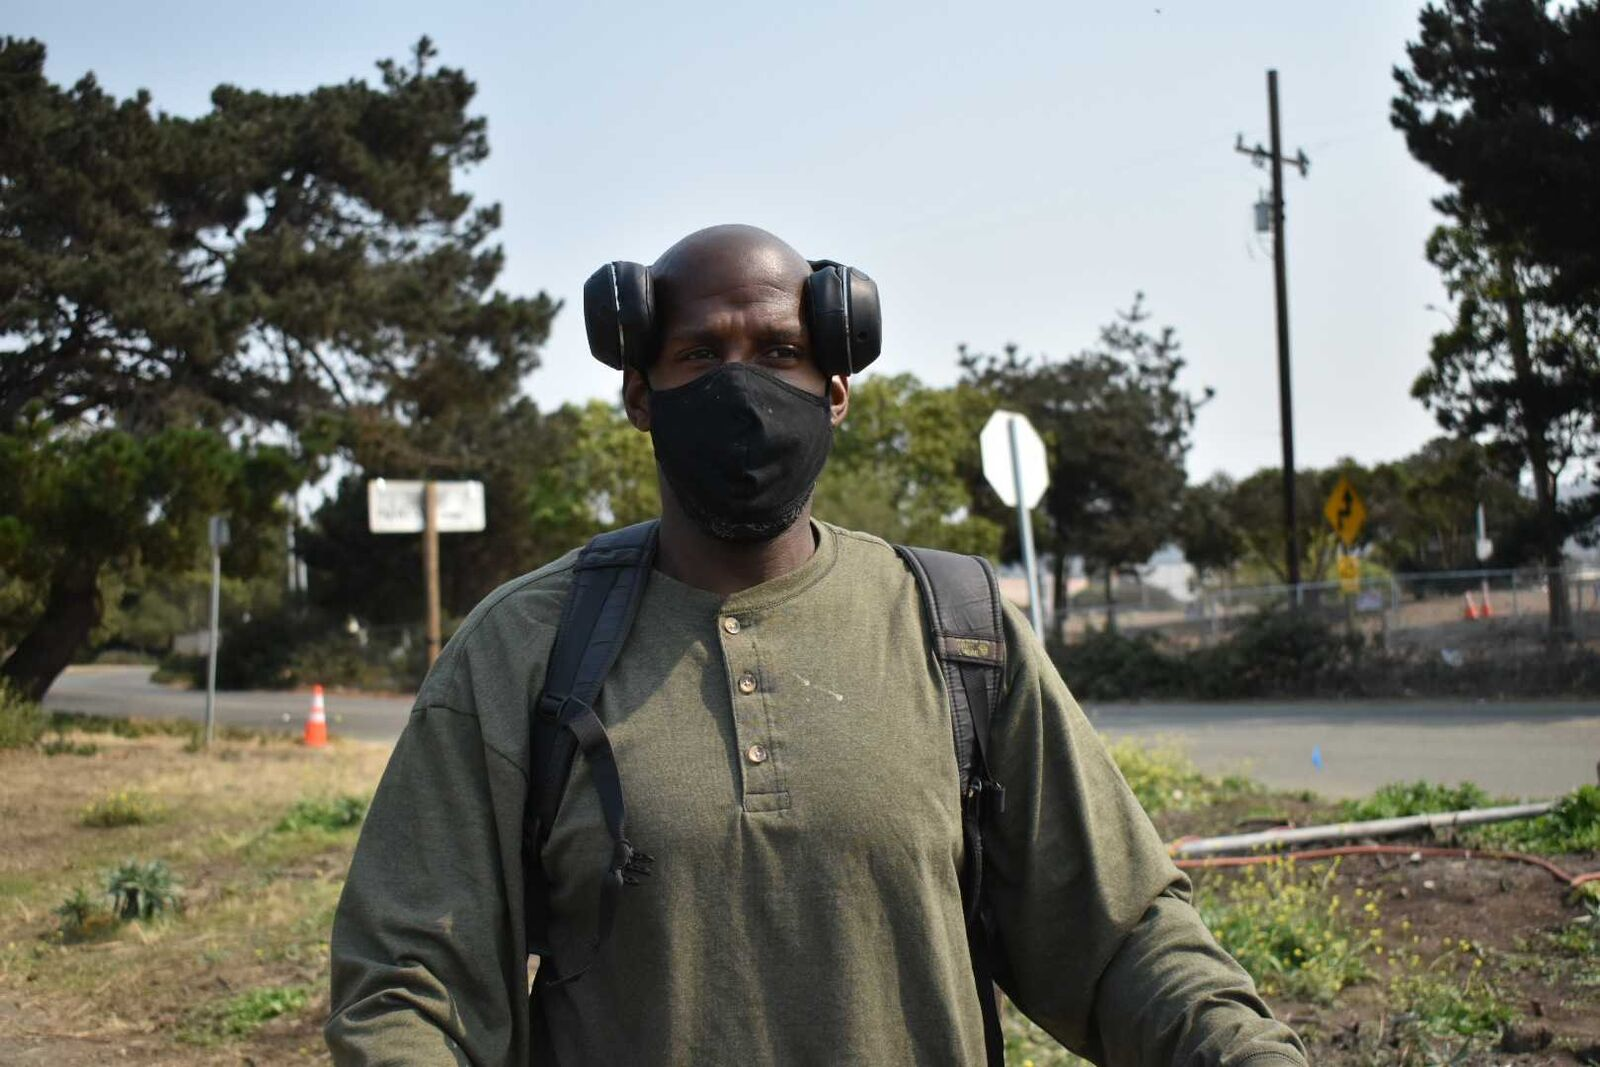 Residents are relocating from the large encampments in West Berkeley and Emeryville after large sweeps this summer.